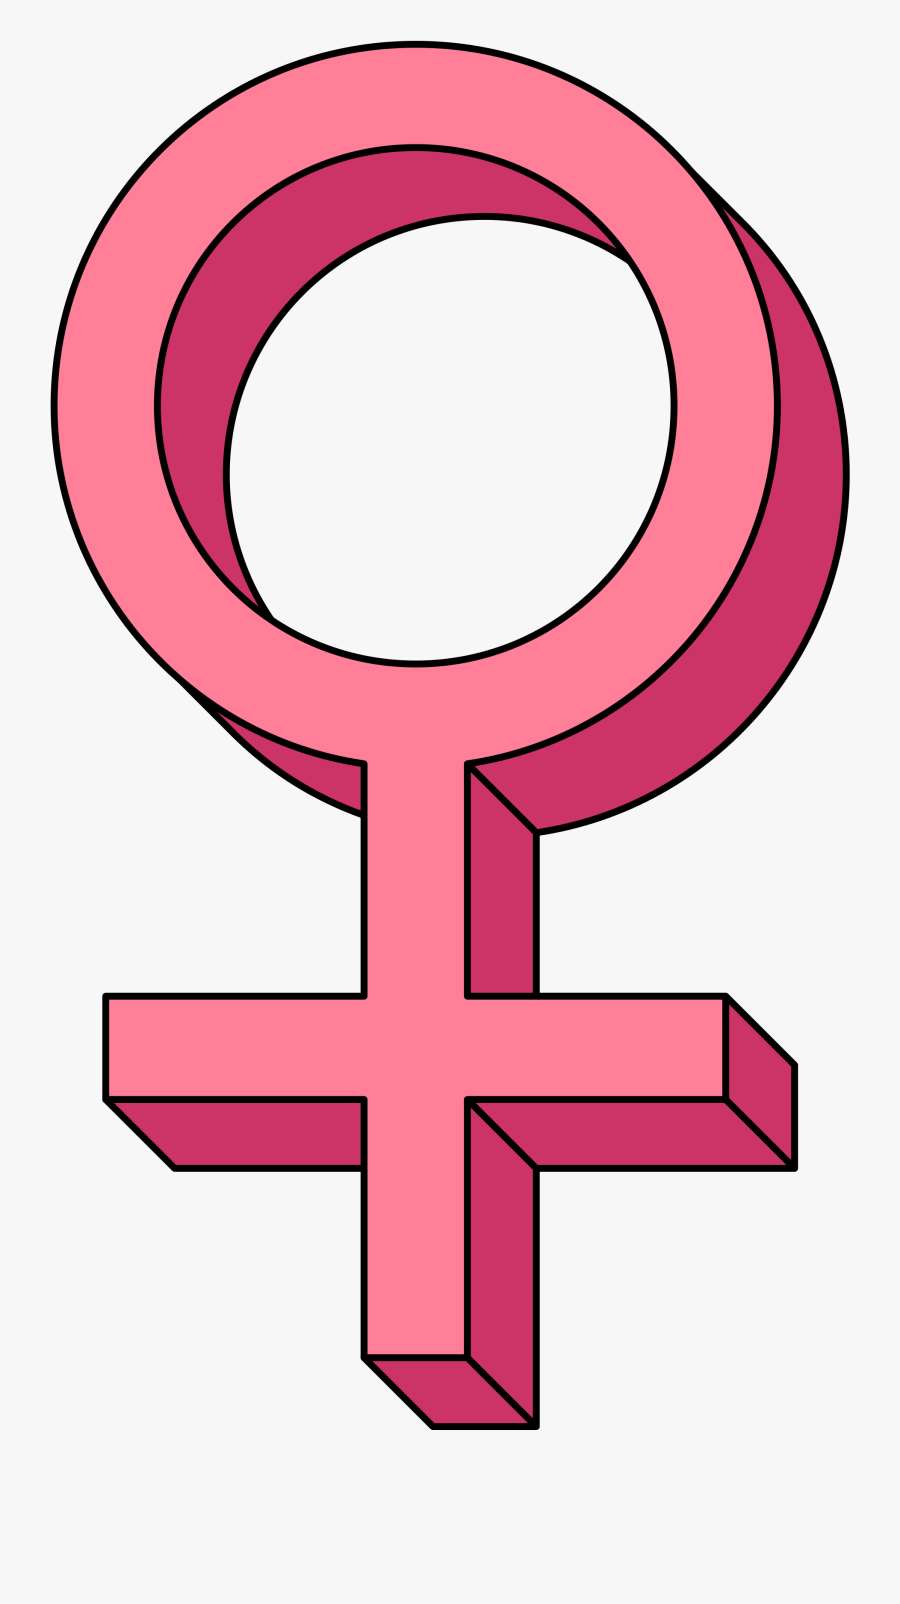 Graphic Library Collection Of Free Femineity Clipart - Female Gender Symbol Transparent, Transparent Clipart